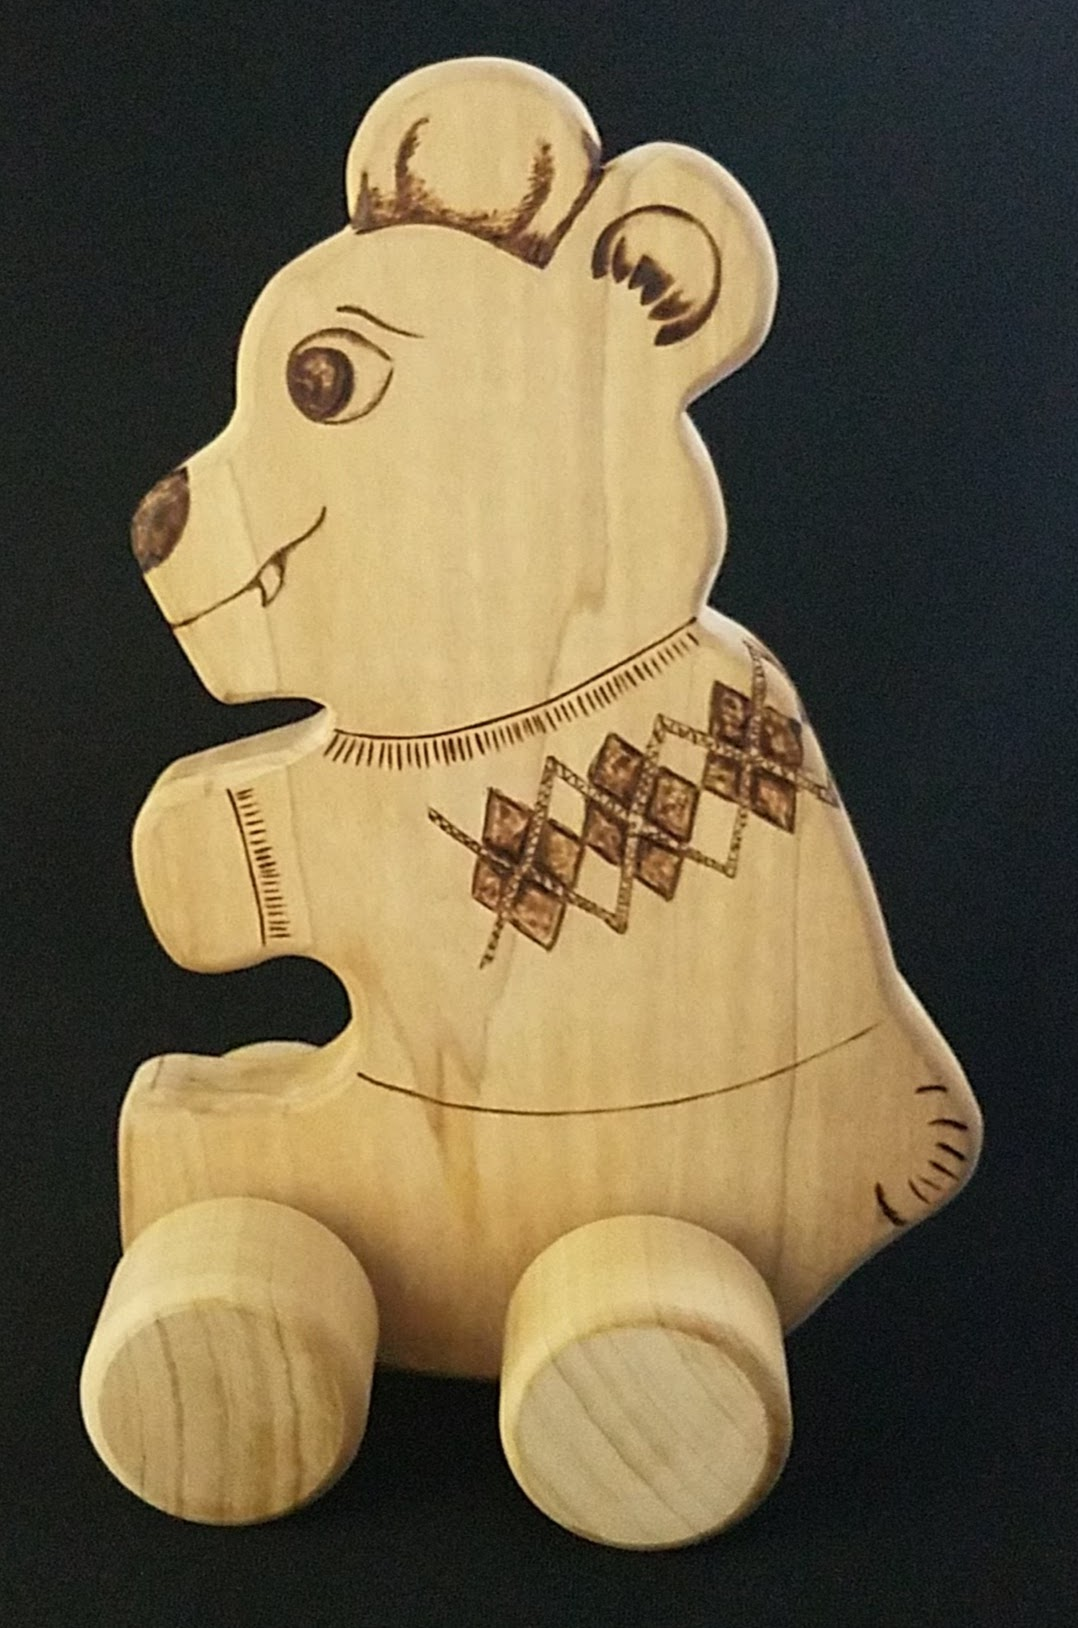 Too cute natural Poplar wood with wood burnt details, rolling teddy bear in argyle sweater.